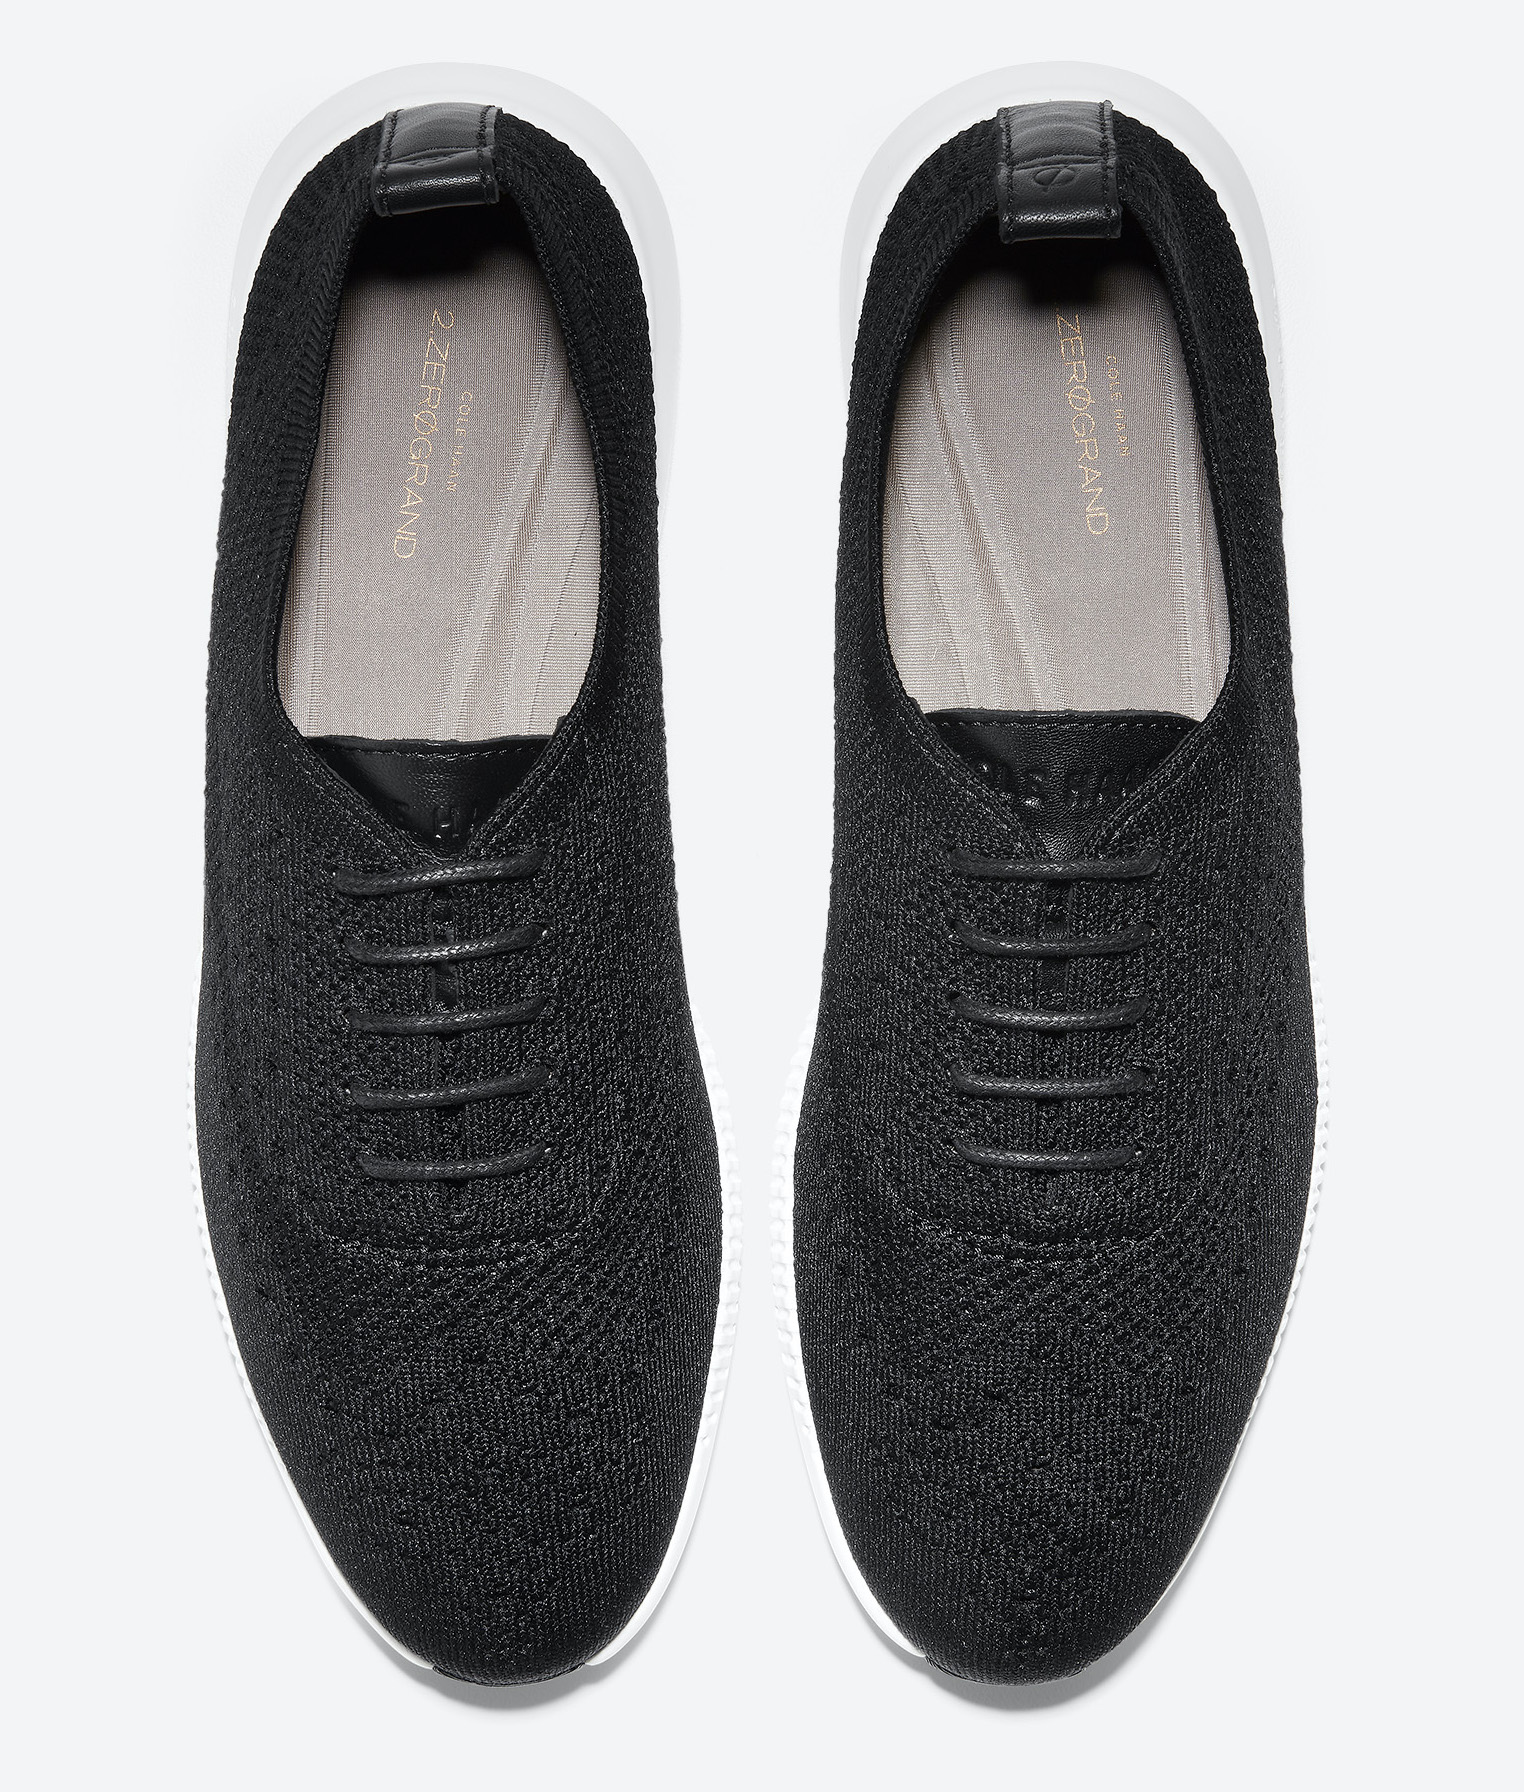 Best Travel Sneakers For Travel Most Comfortable Shoes Stylish Chic Cole Haan Zerogrand Stitchlite Oxford Paris Chic Style